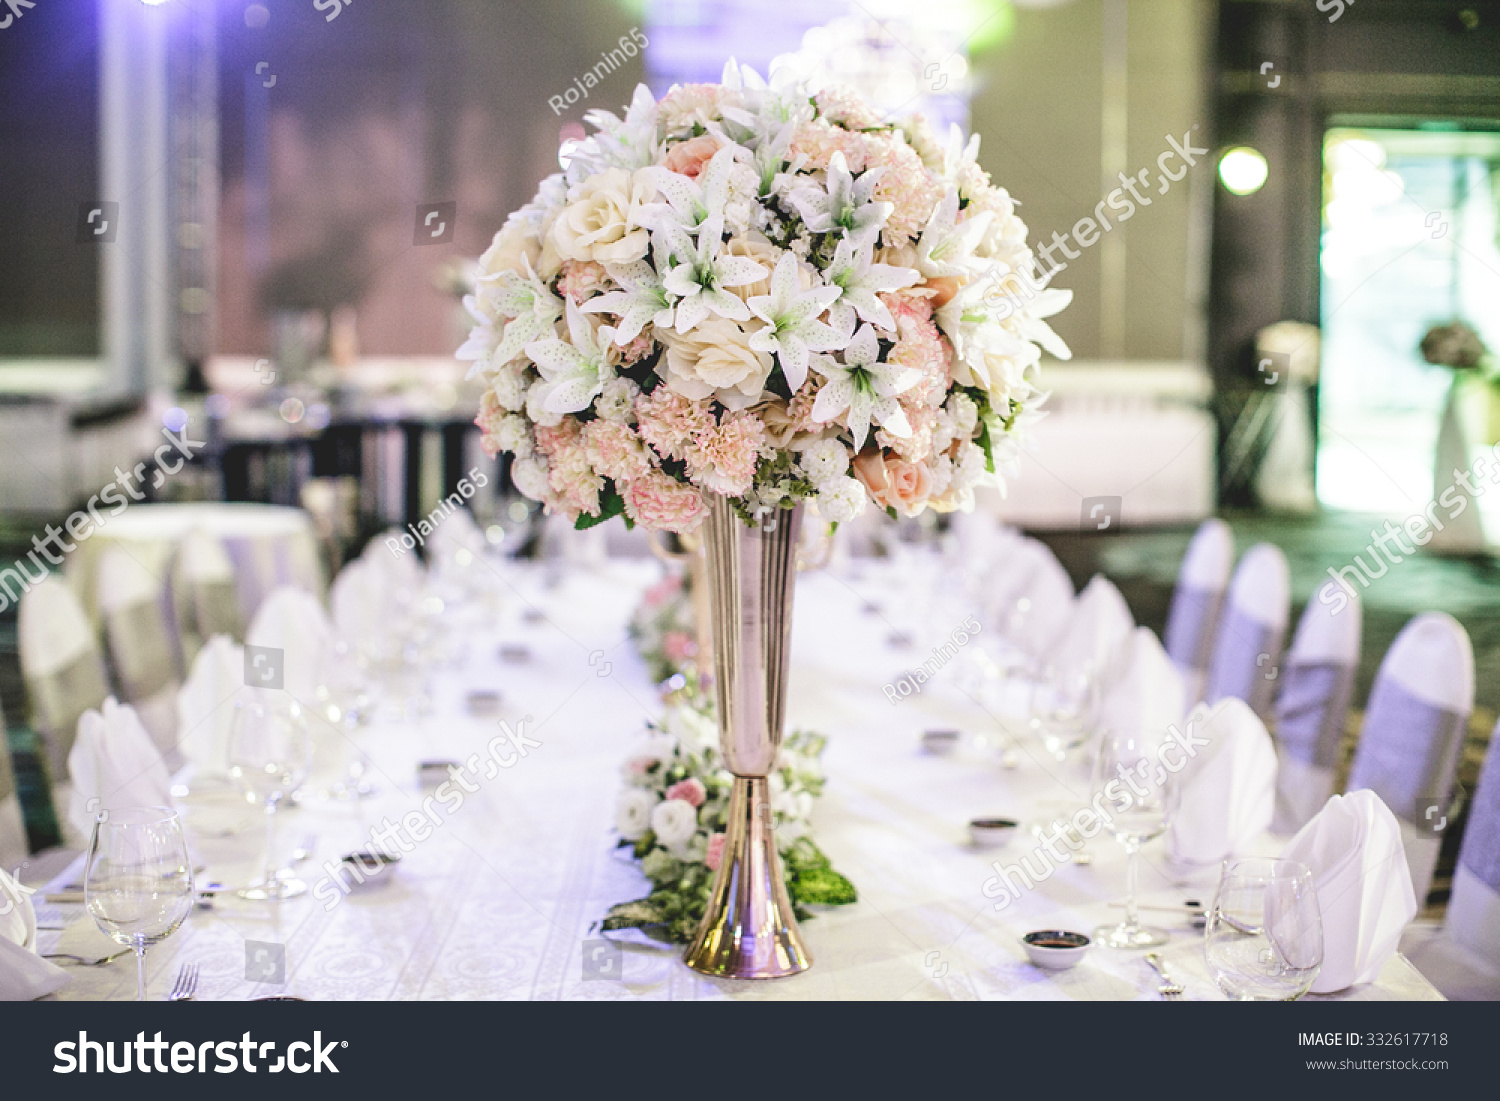 Wedding Flowers On Table Dinner Stock Photo (Royalty Free) 332617718 ...